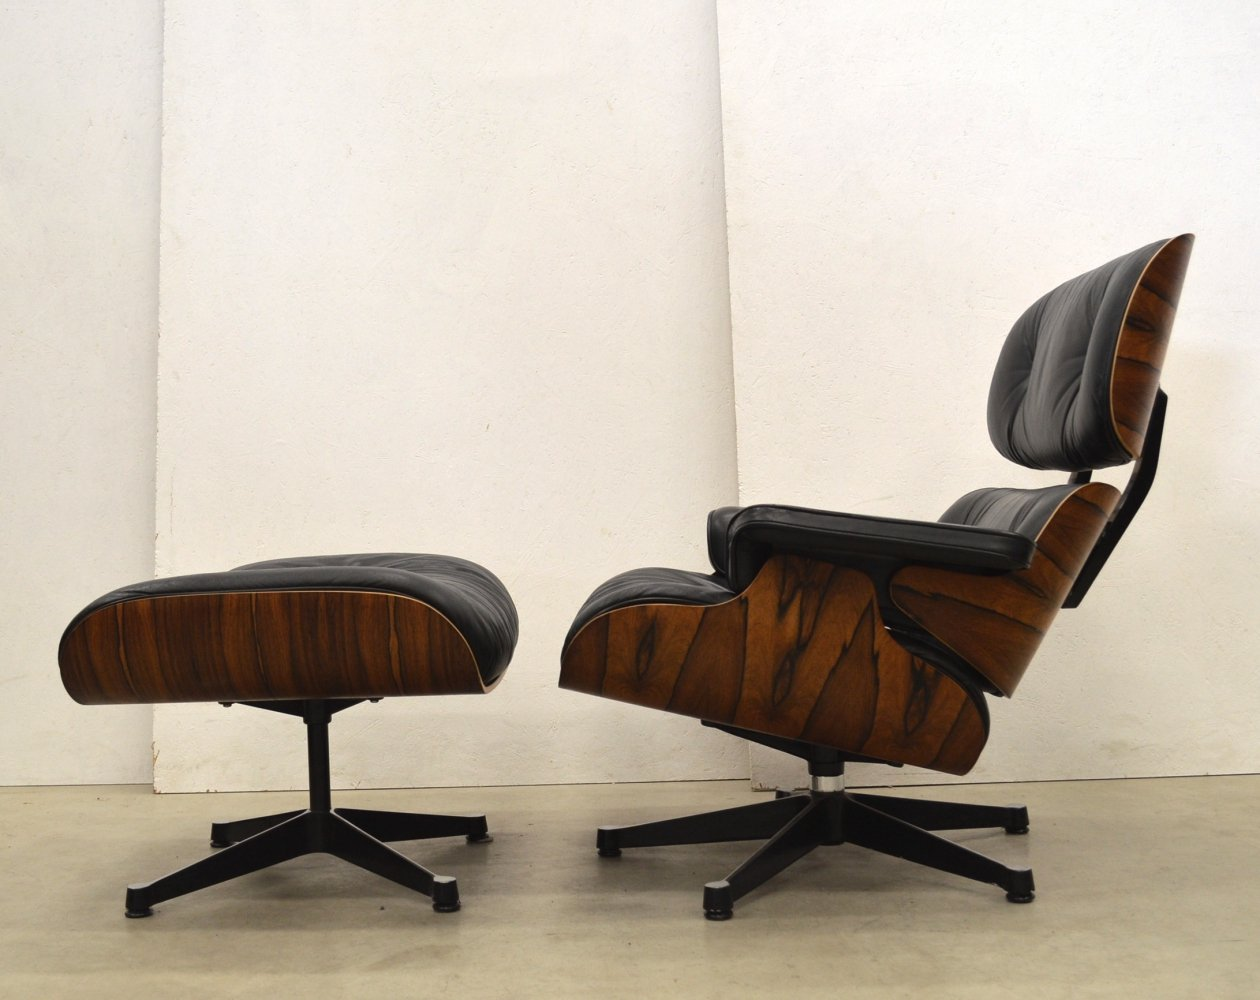 Lounge chair by Charles & Ray Eames for Vitra, 1980s